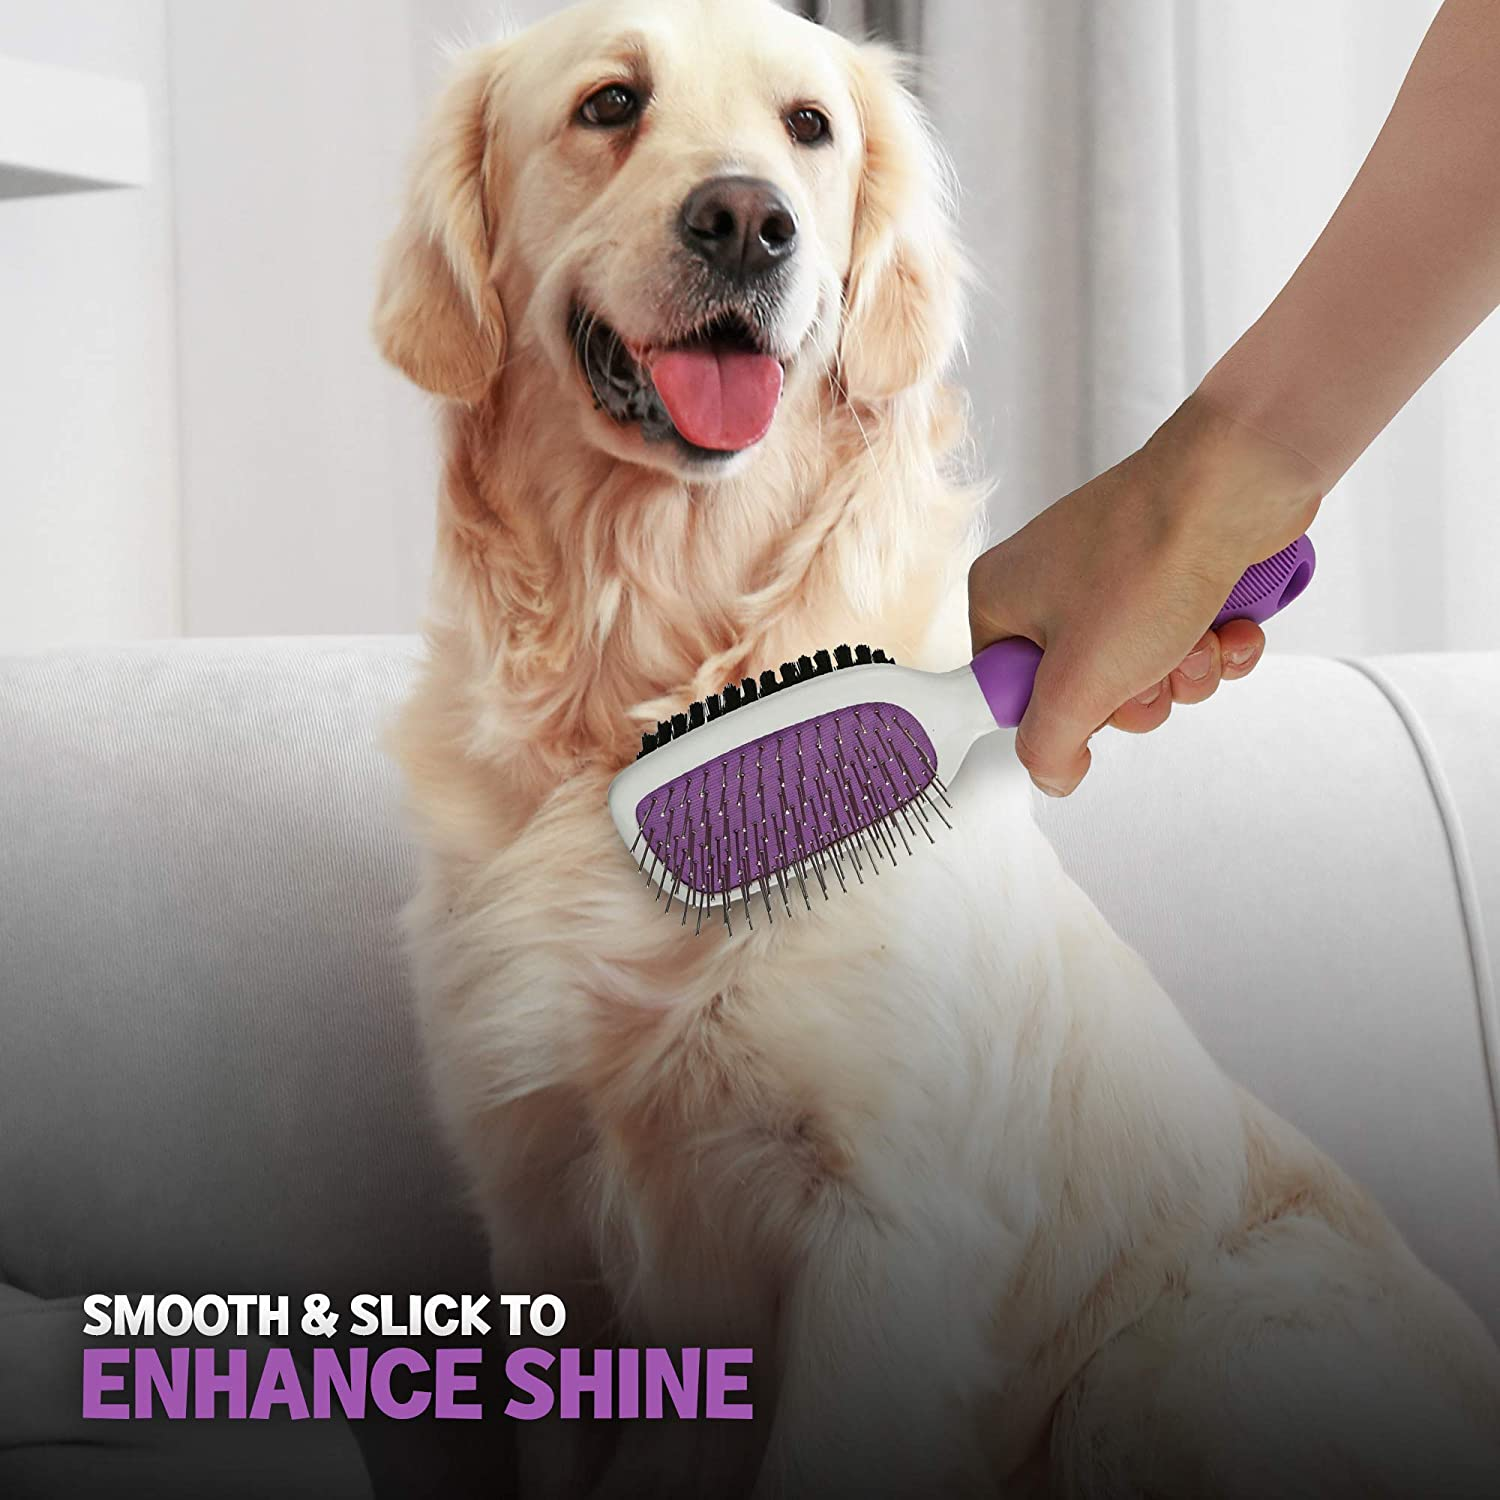 eecoo Dog Cat Brush Double‑Sided Pet Grooming Comb for Pet Grooming Dematting Brush Dog Massage Brush for Removes Shedding Mats and Tangled Hair